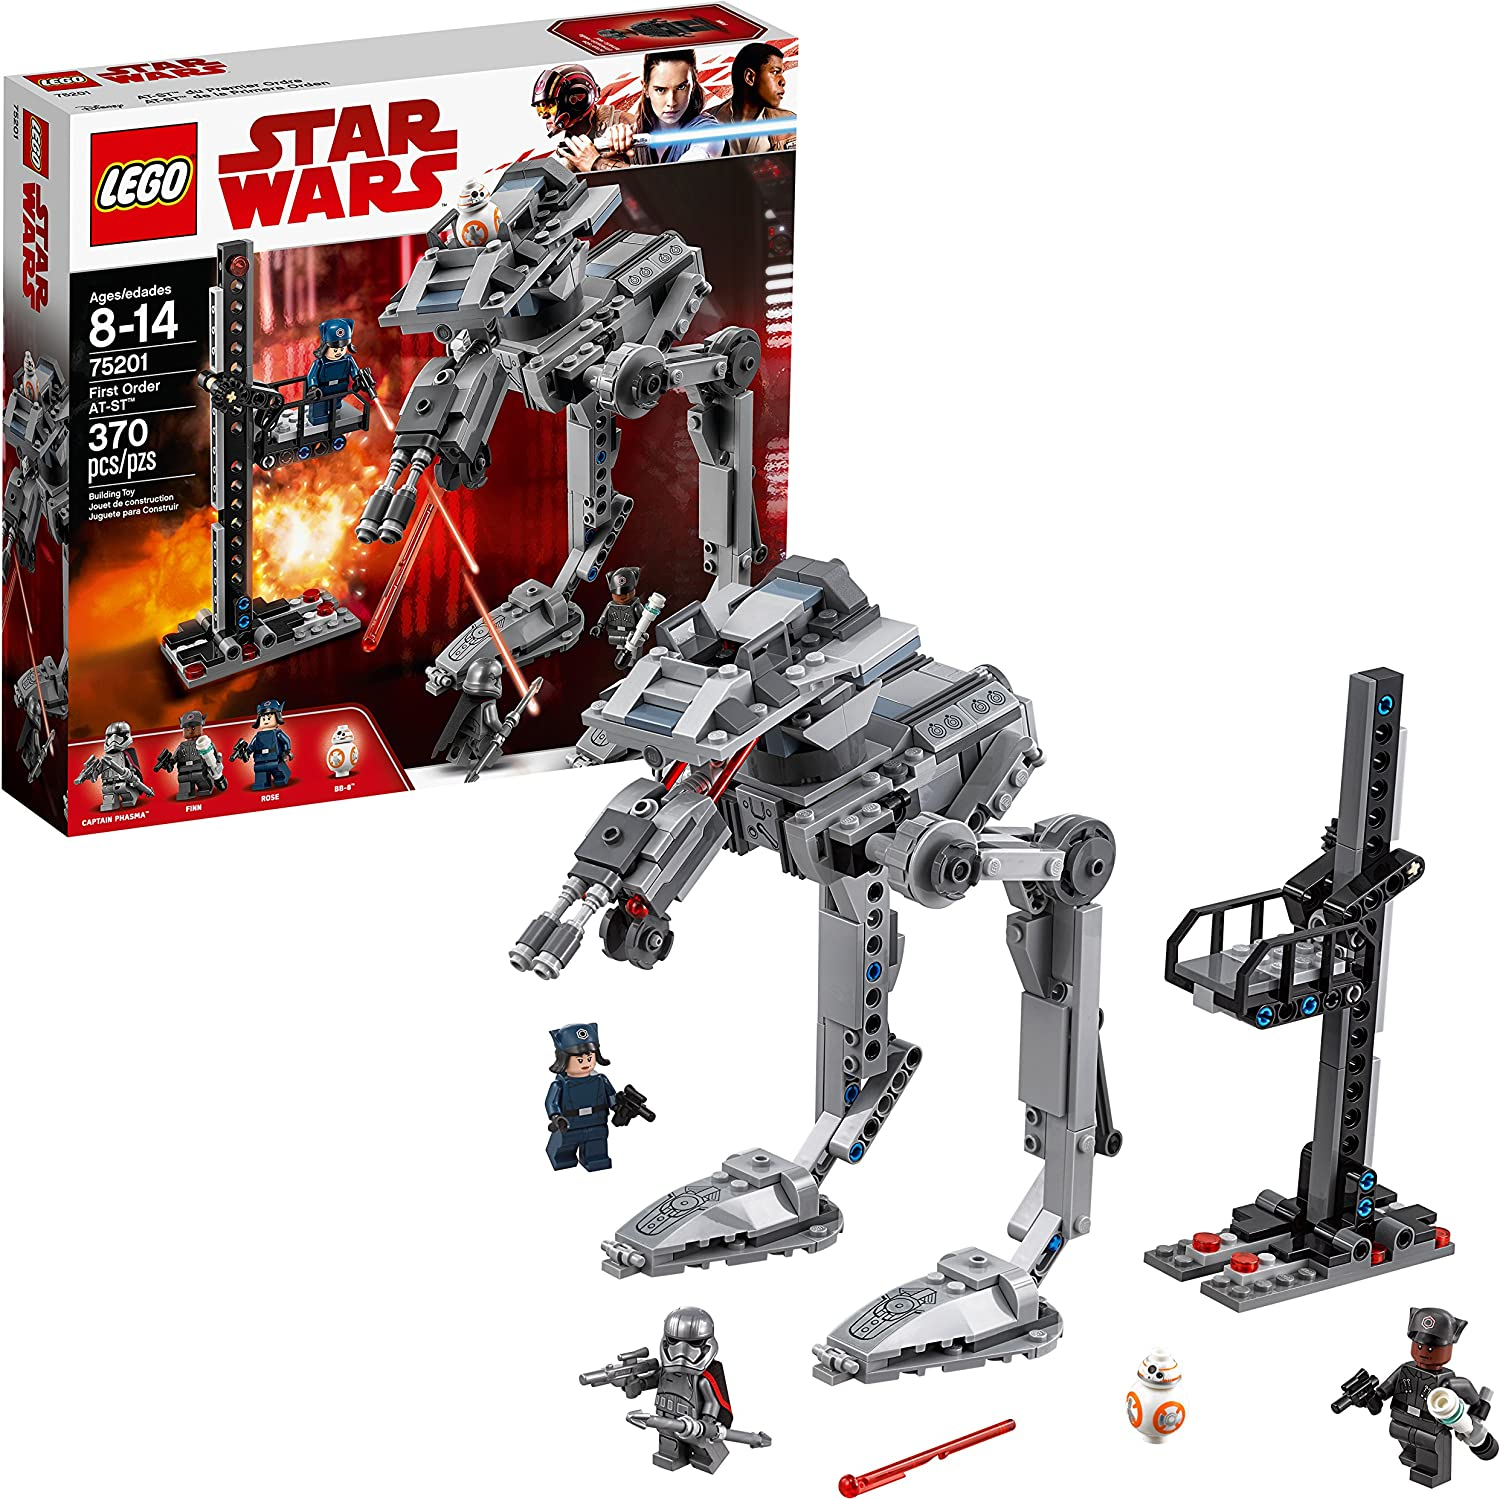 LEGO Star Wars: The Last Jedi First Order AT-ST 75201 Building Kit (370 Piece)